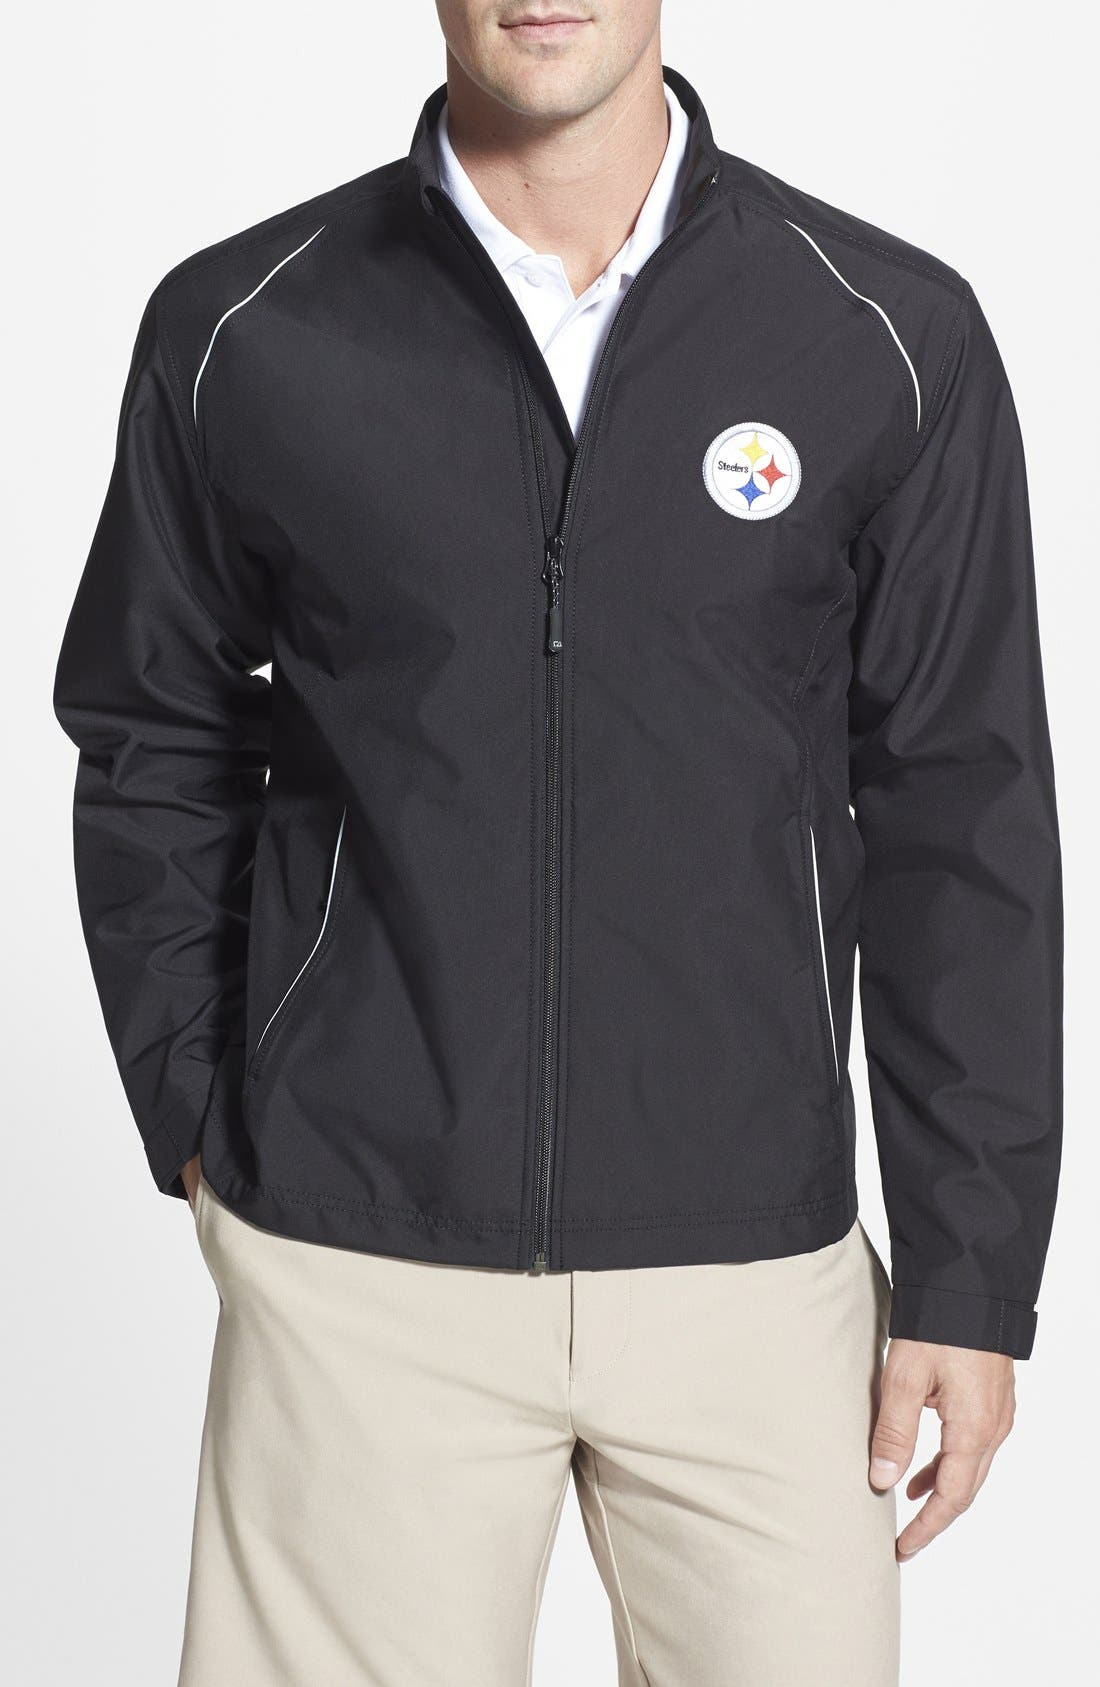 Pittsburgh Steelers - Beacon WeatherTec Wind & Water Resistant Jacket,                         Main,                         color,